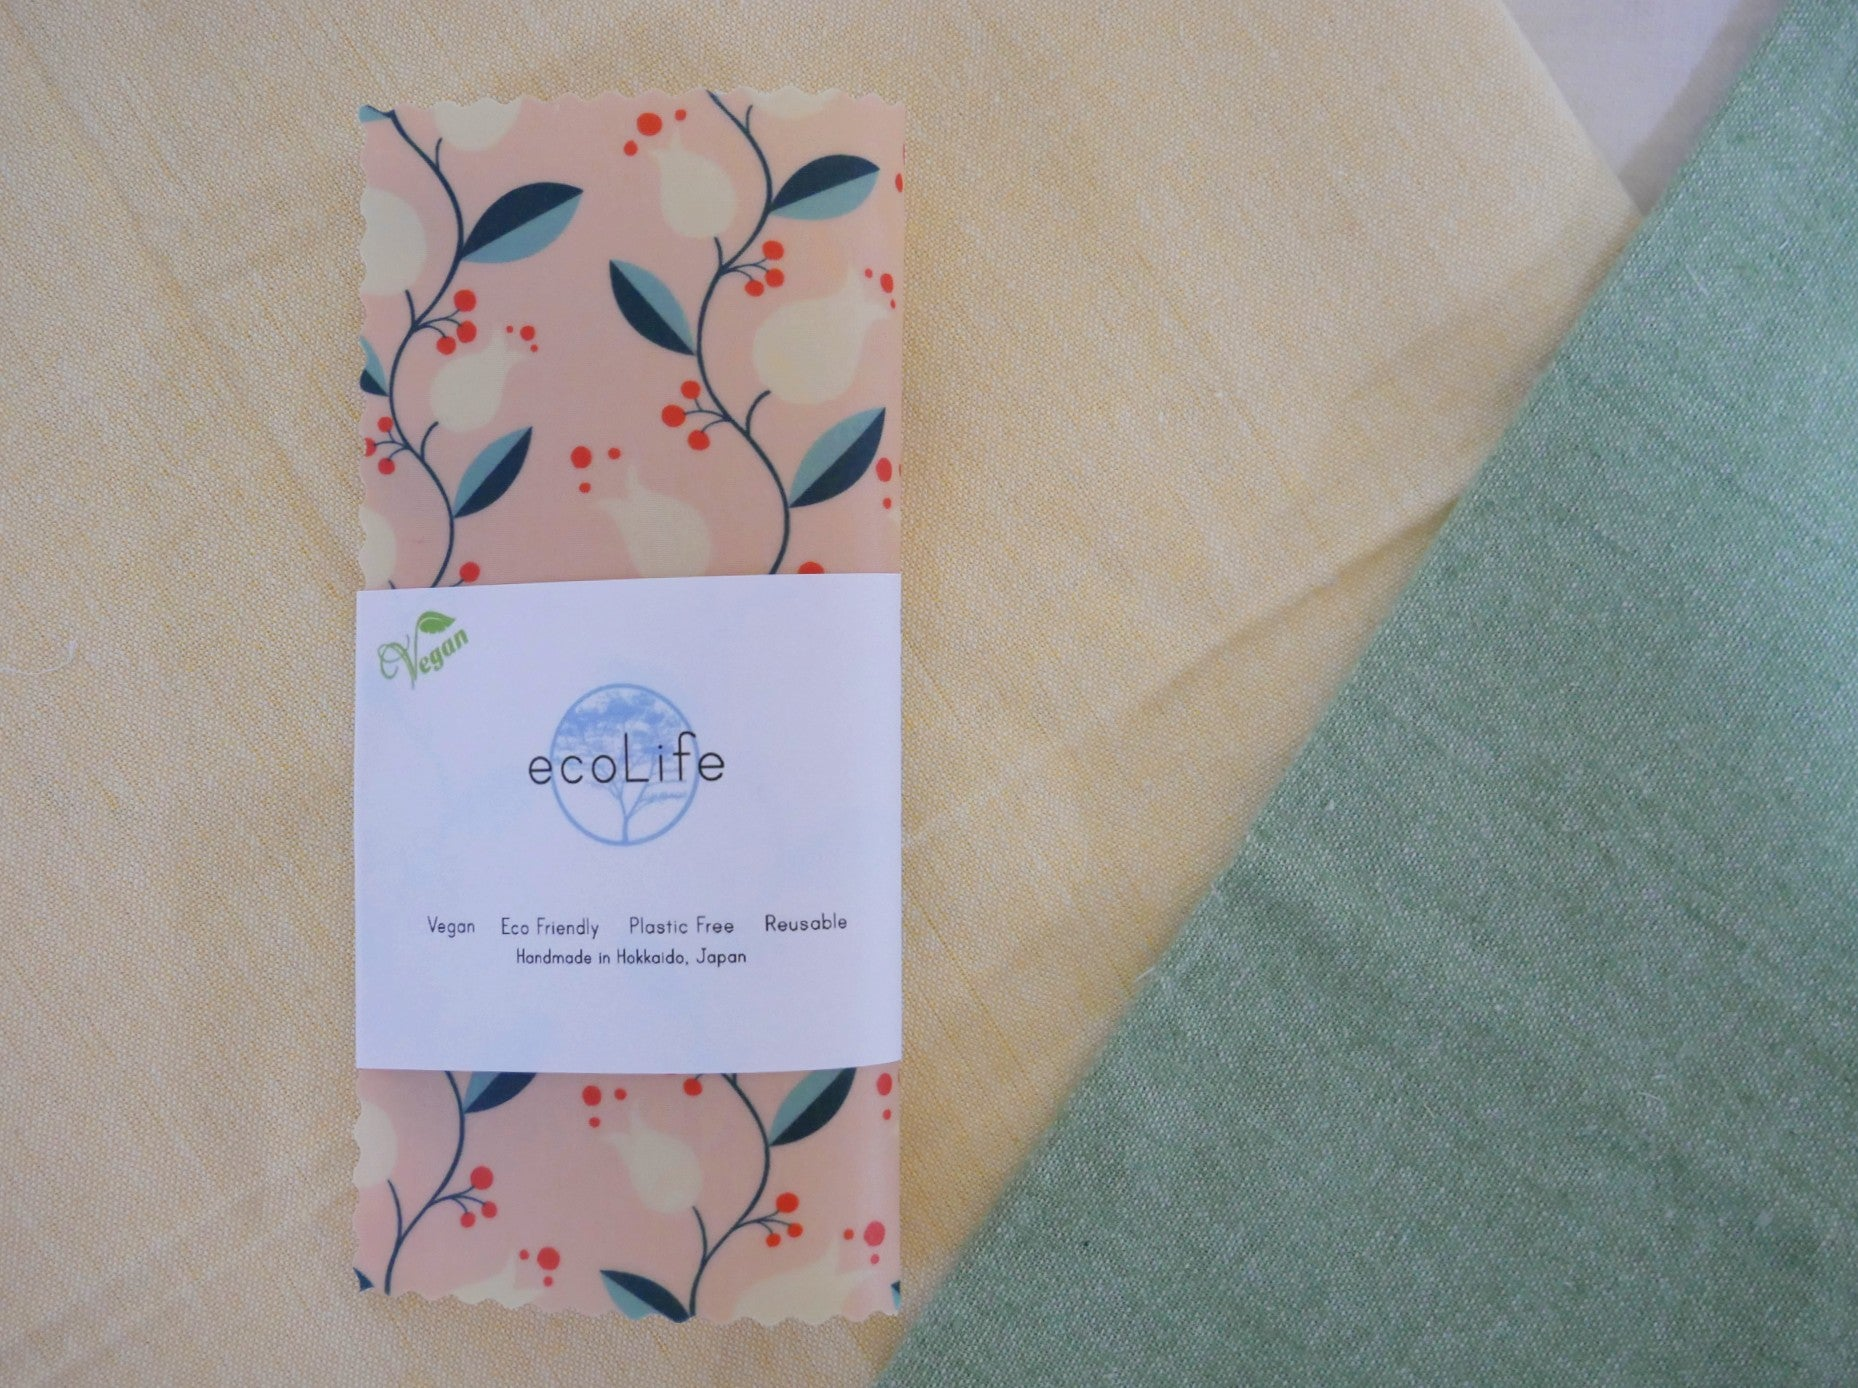 Vegan Wax Wrap (Organic Cotton)